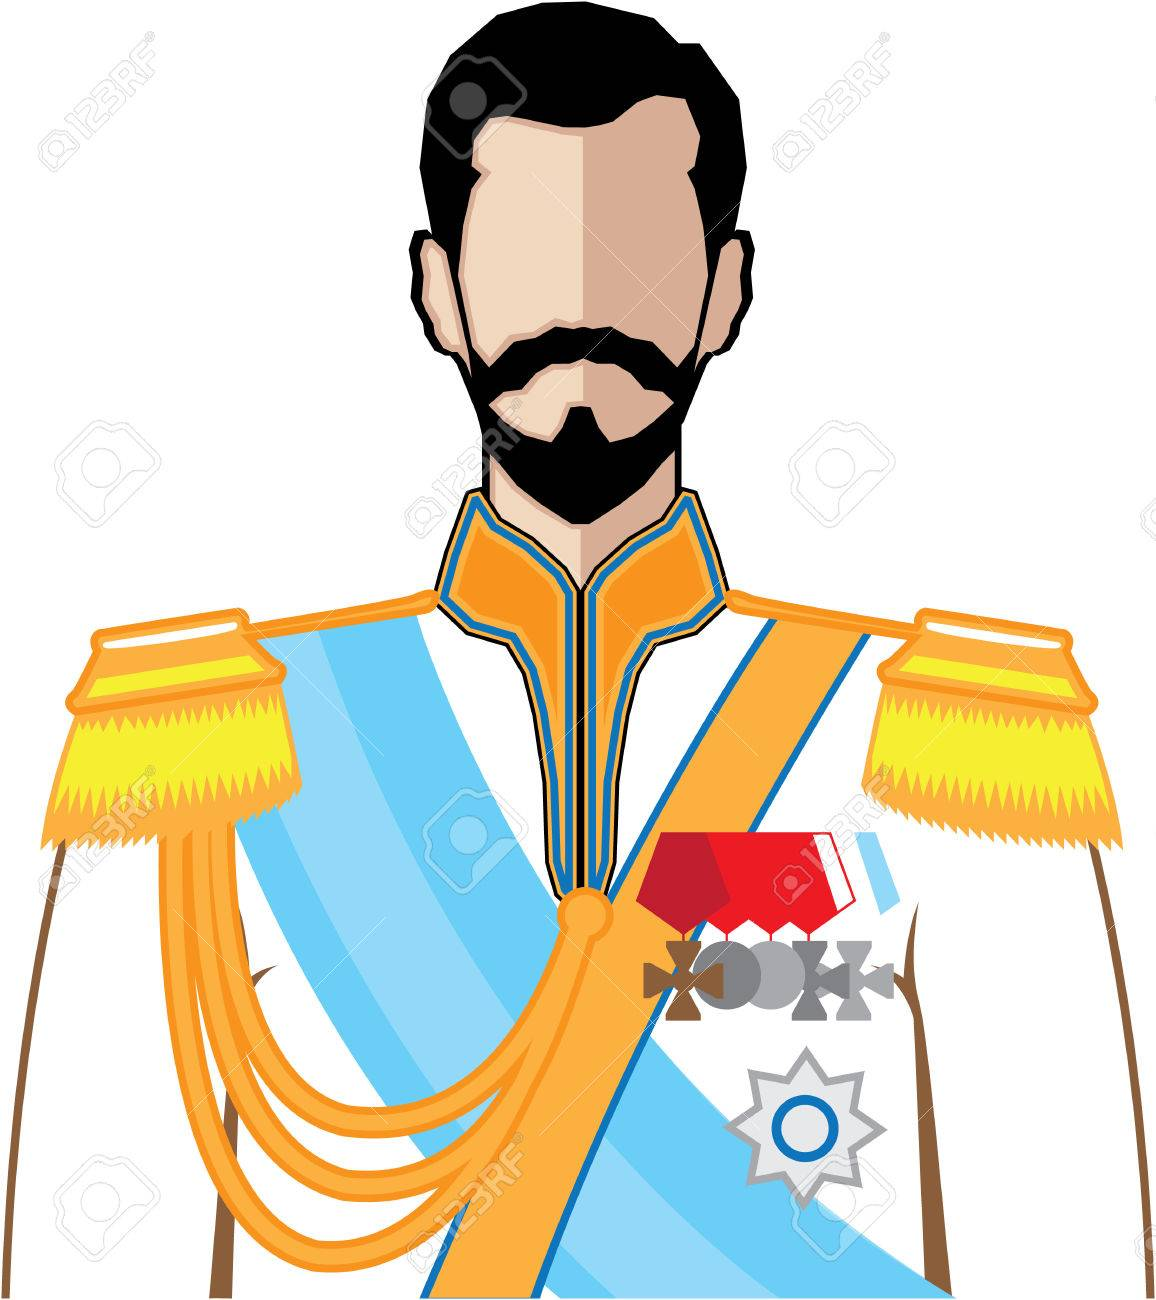 Russian Czar vector illustration clip.